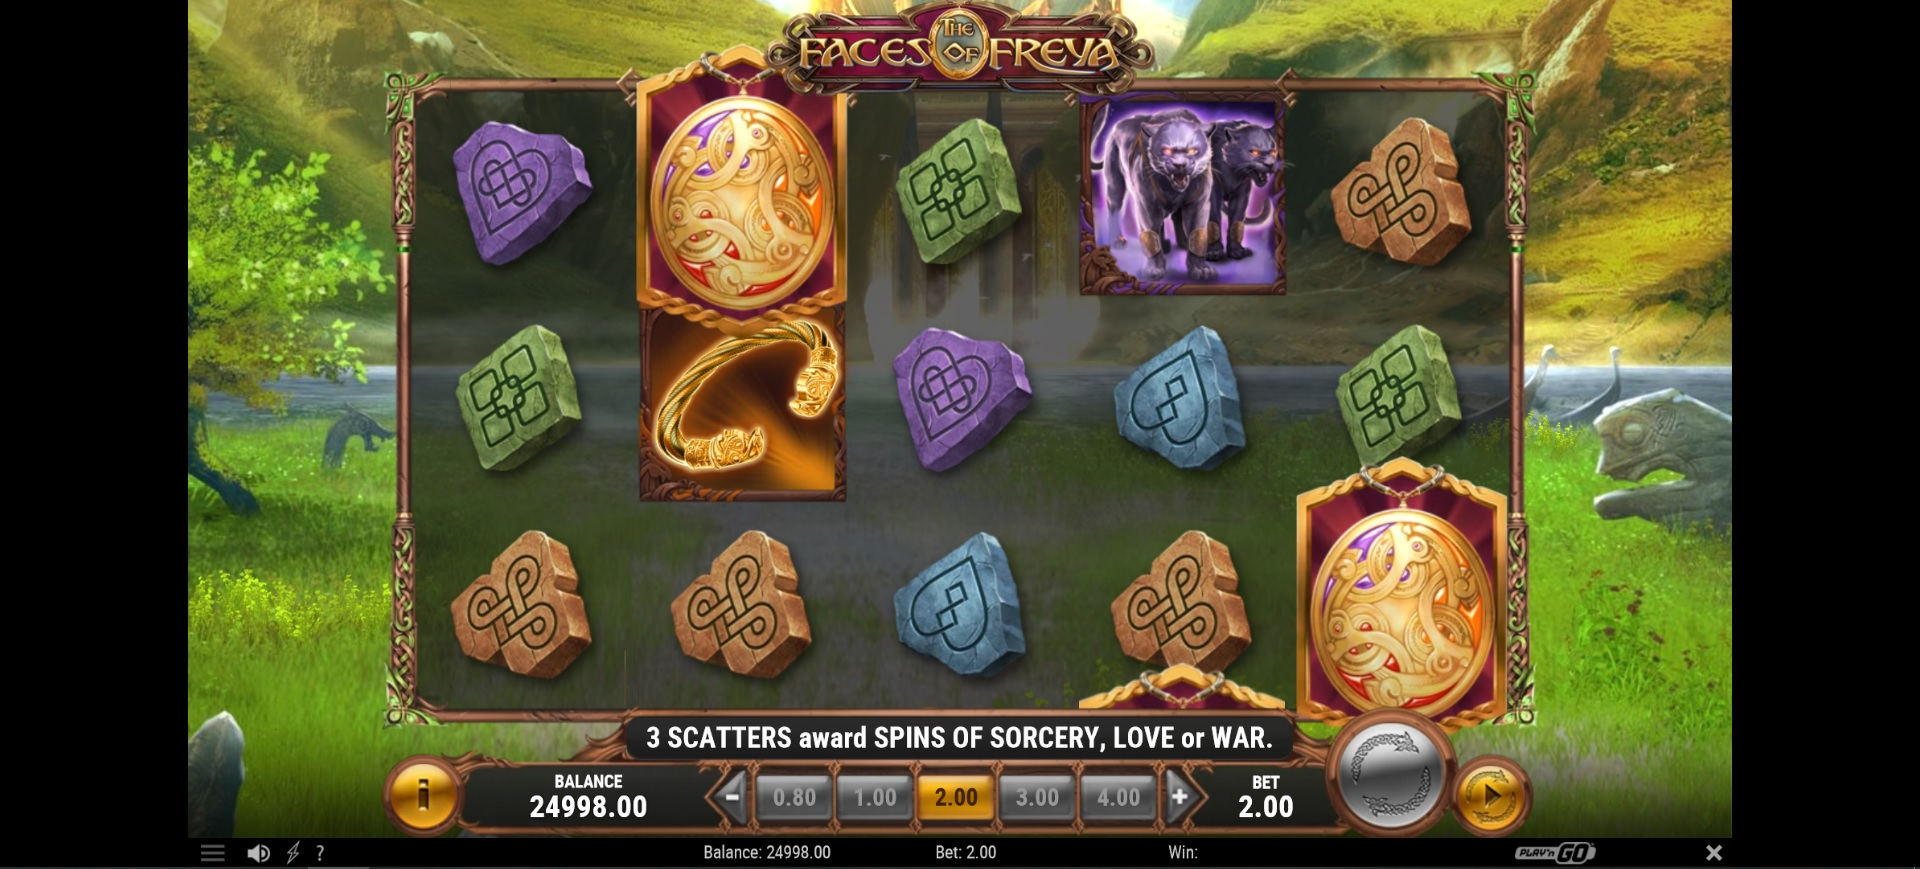 The Faces of Freya Slot Main Game